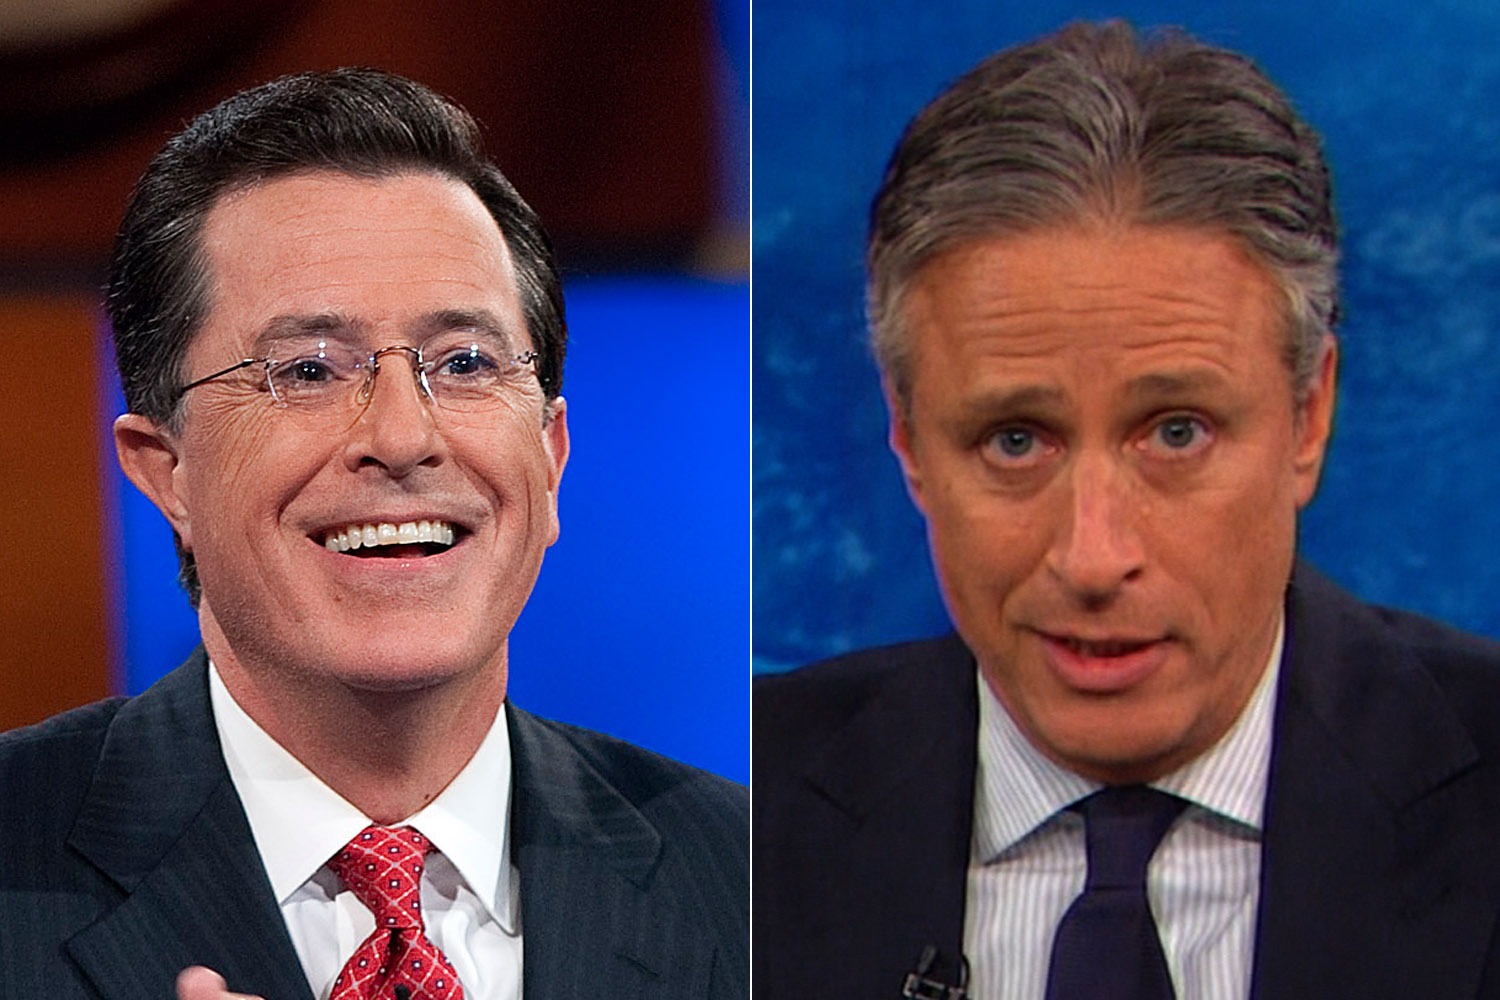 From left to right, Stephen Colbert and Jon Stewart.